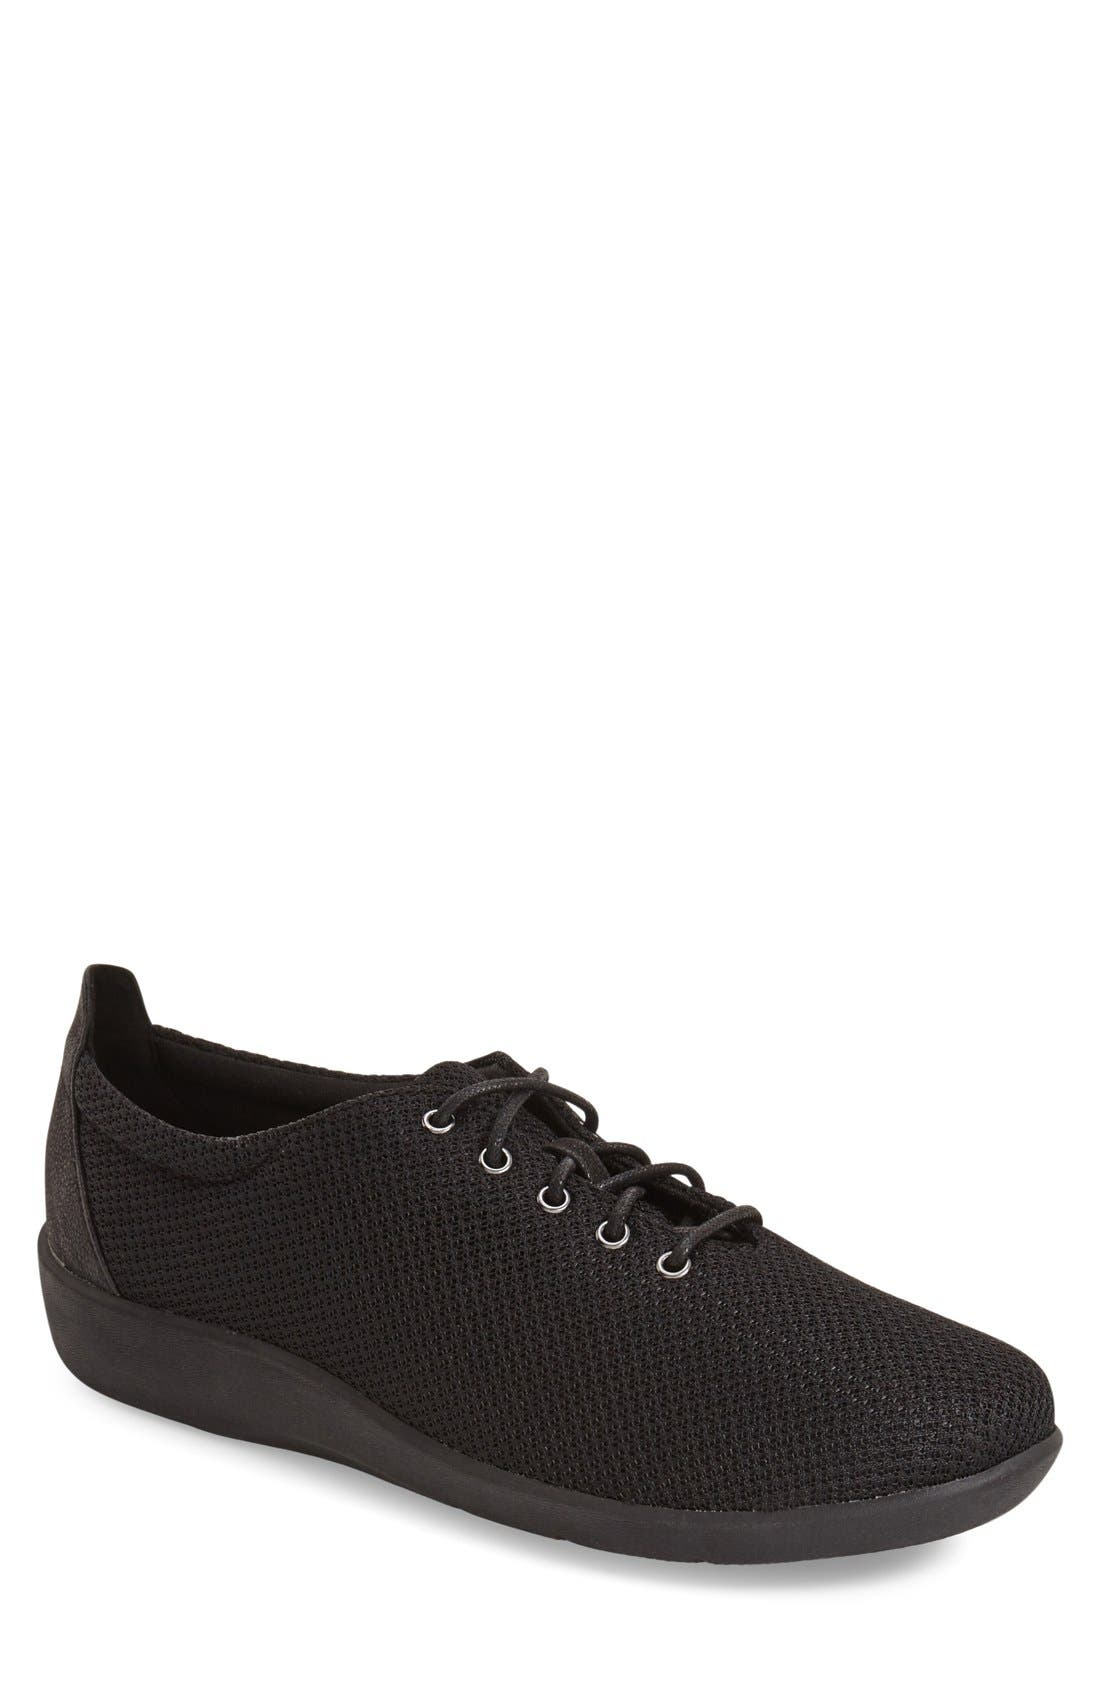 Clarks<sup>®</sup> 'Sillian - Tino' Sneaker, Main, color, 001